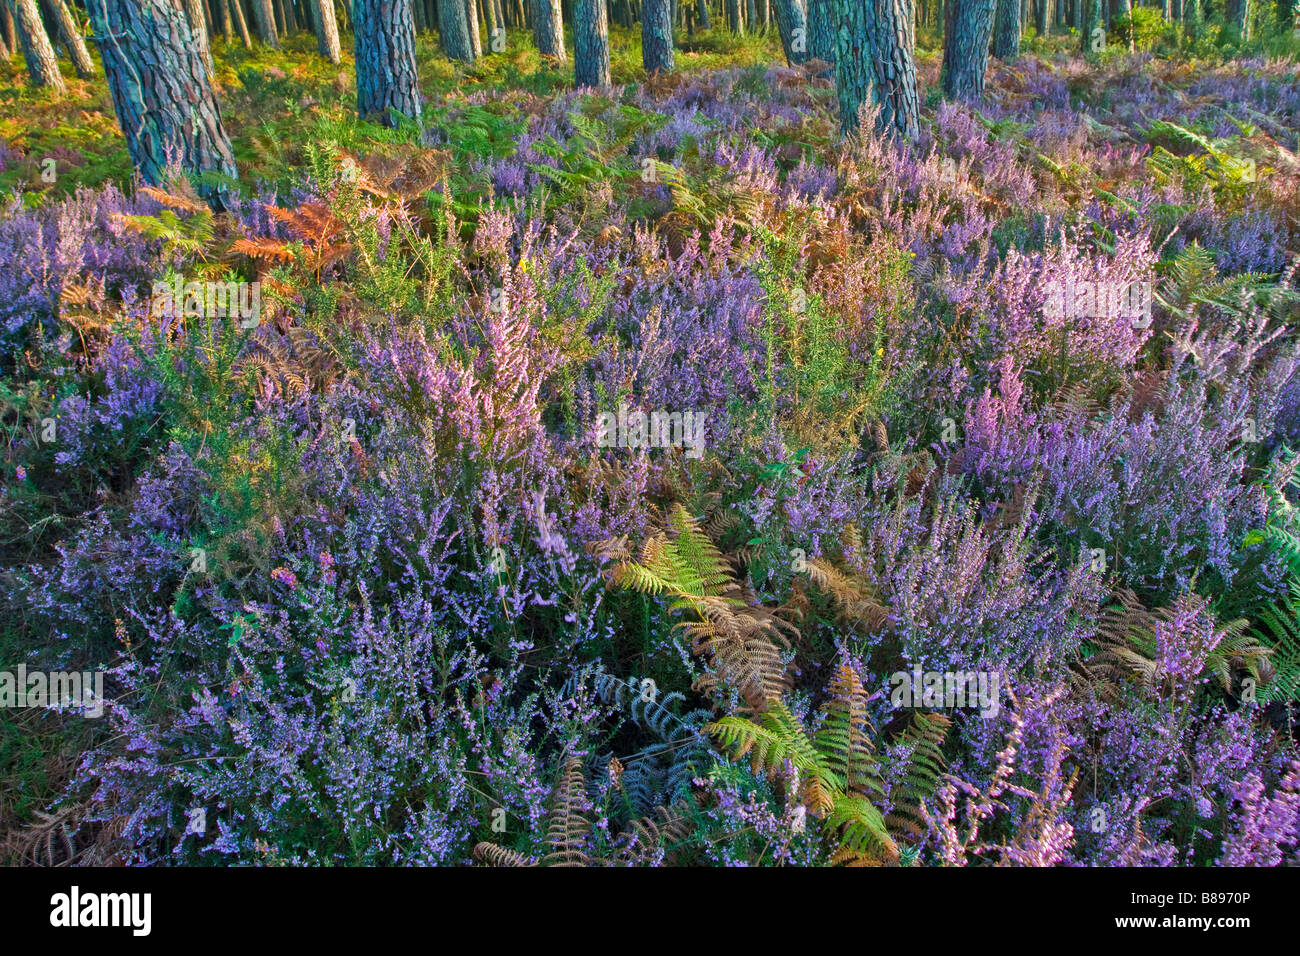 Pink heather flowers in a pine tree forest stock photo 22330694 alamy pink heather flowers in a pine tree forest mightylinksfo